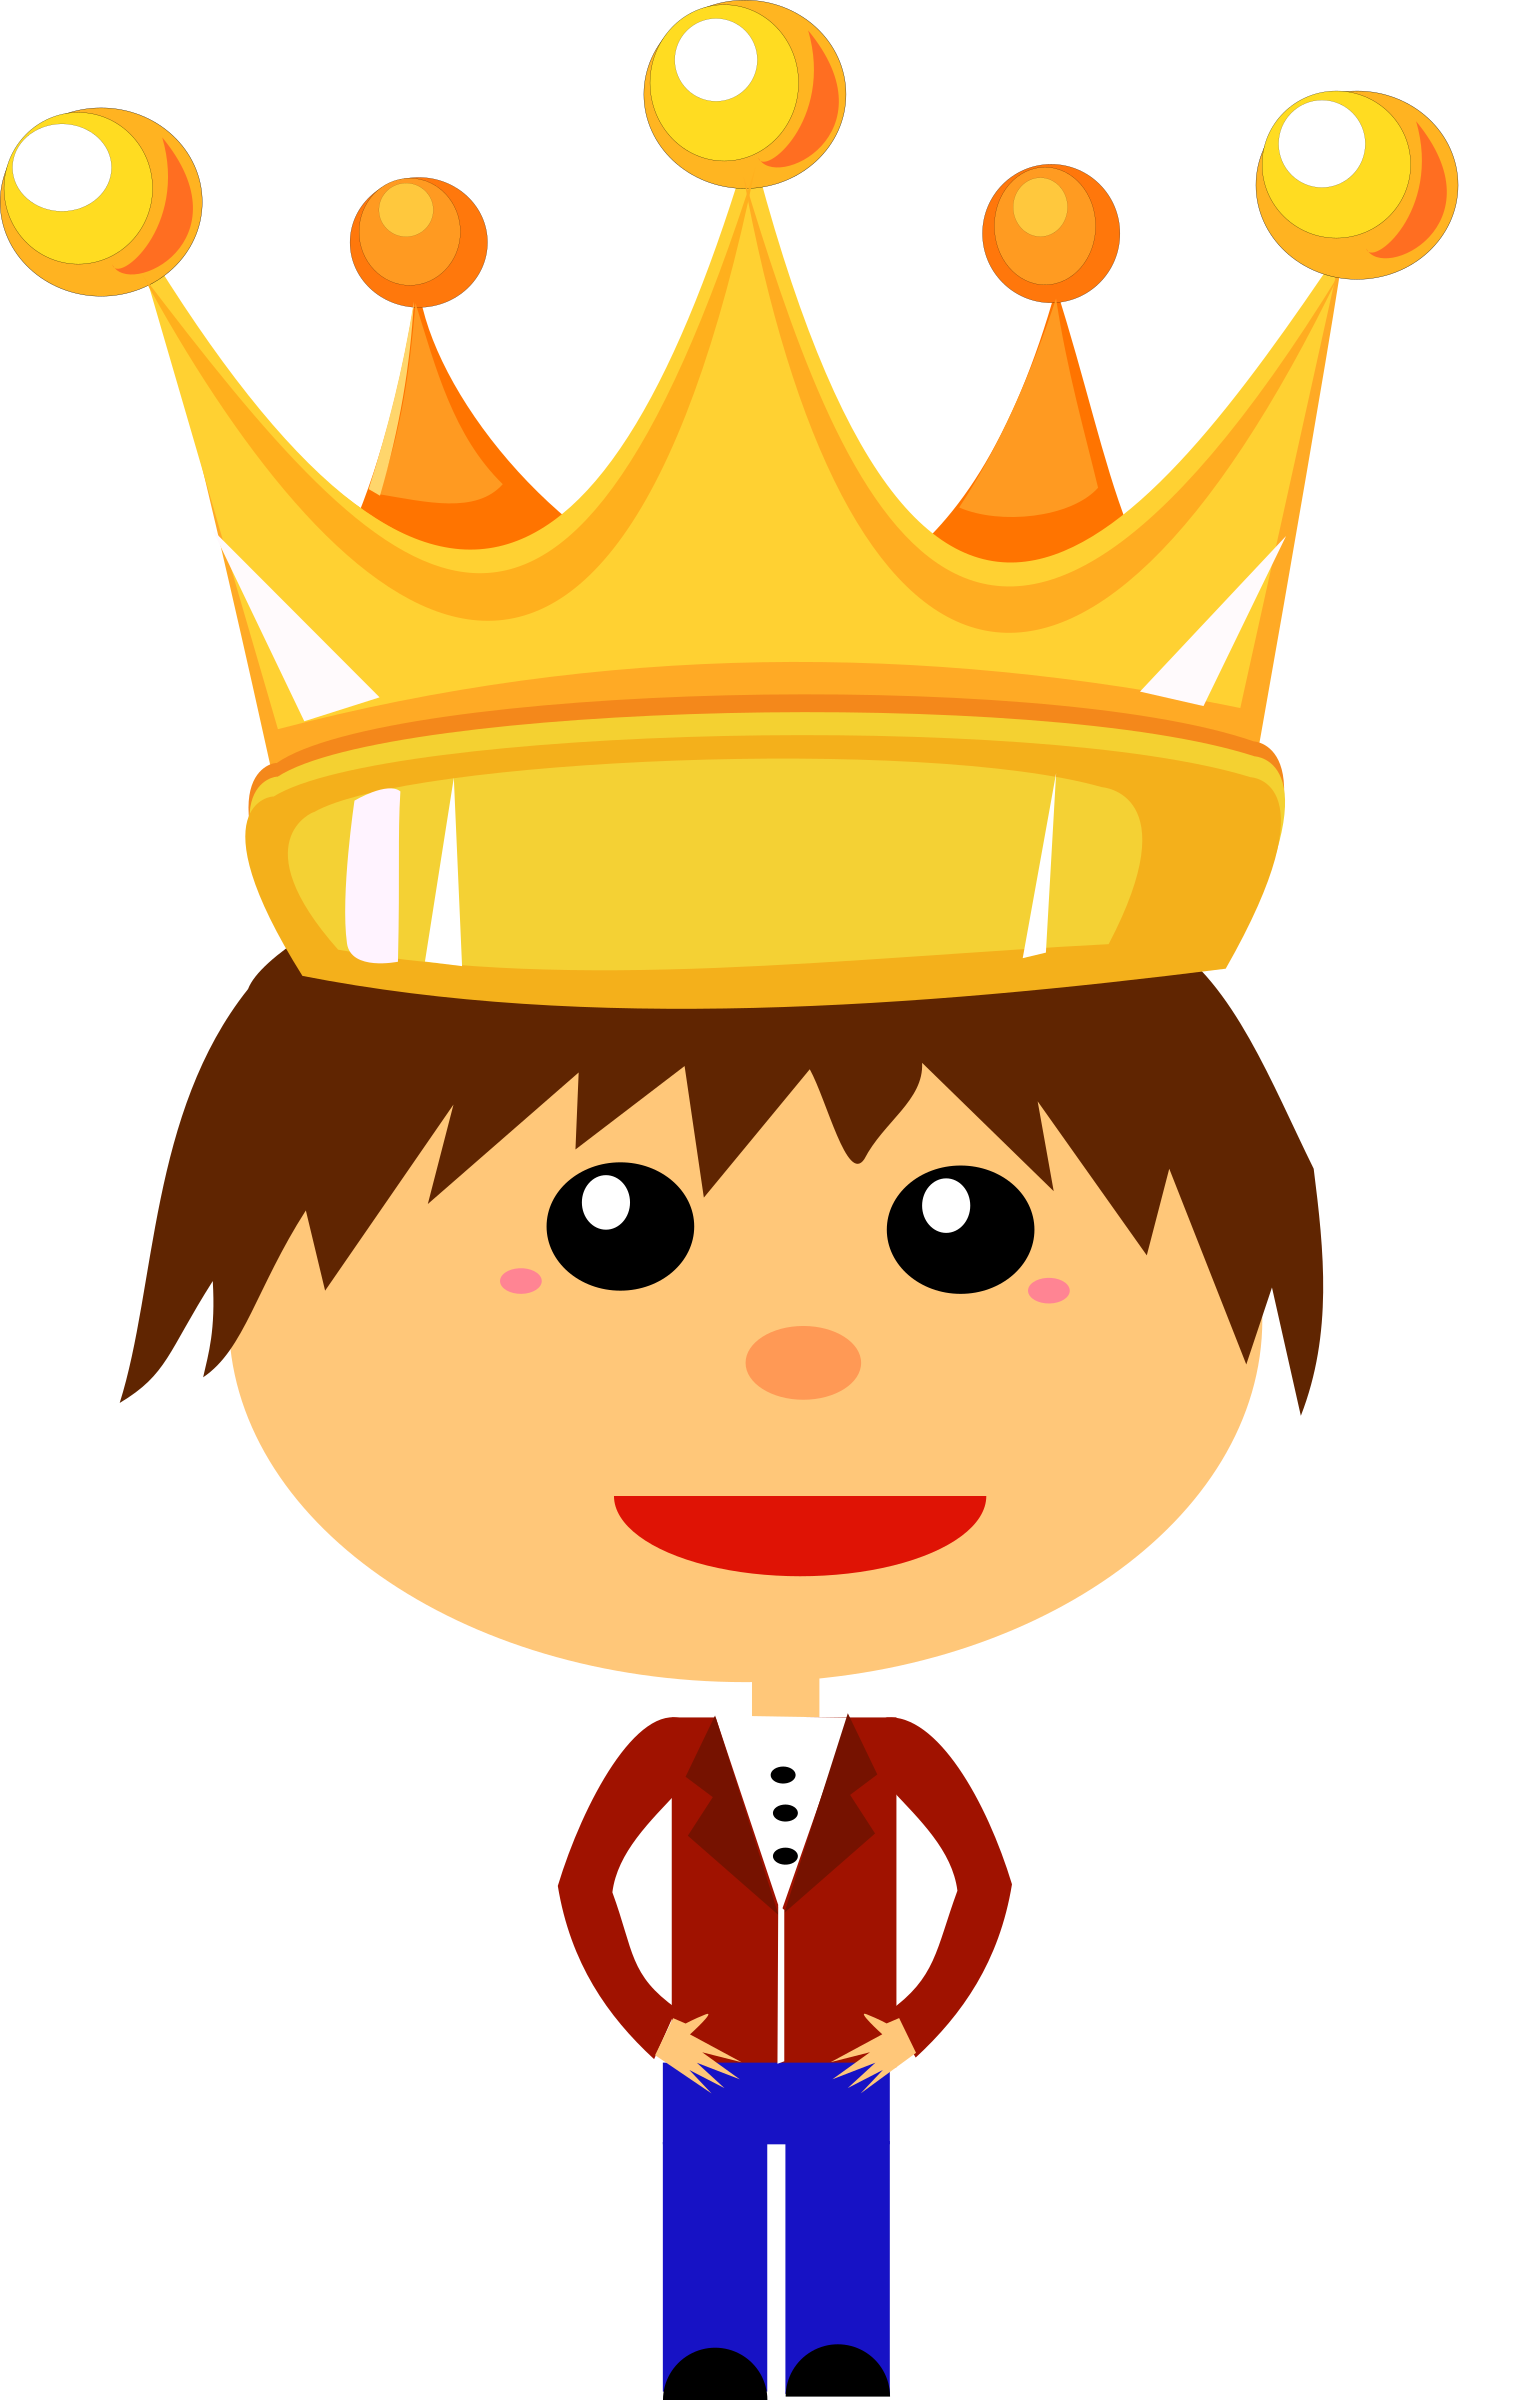 Clipart Crown Prince Picture 466541 Clipart Crown Prince Golden emperor prince queen royal crowns diamond coronation gold antique tiara crowning imperial corona jewels isolated illustration set. picture 466541 clipart crown prince